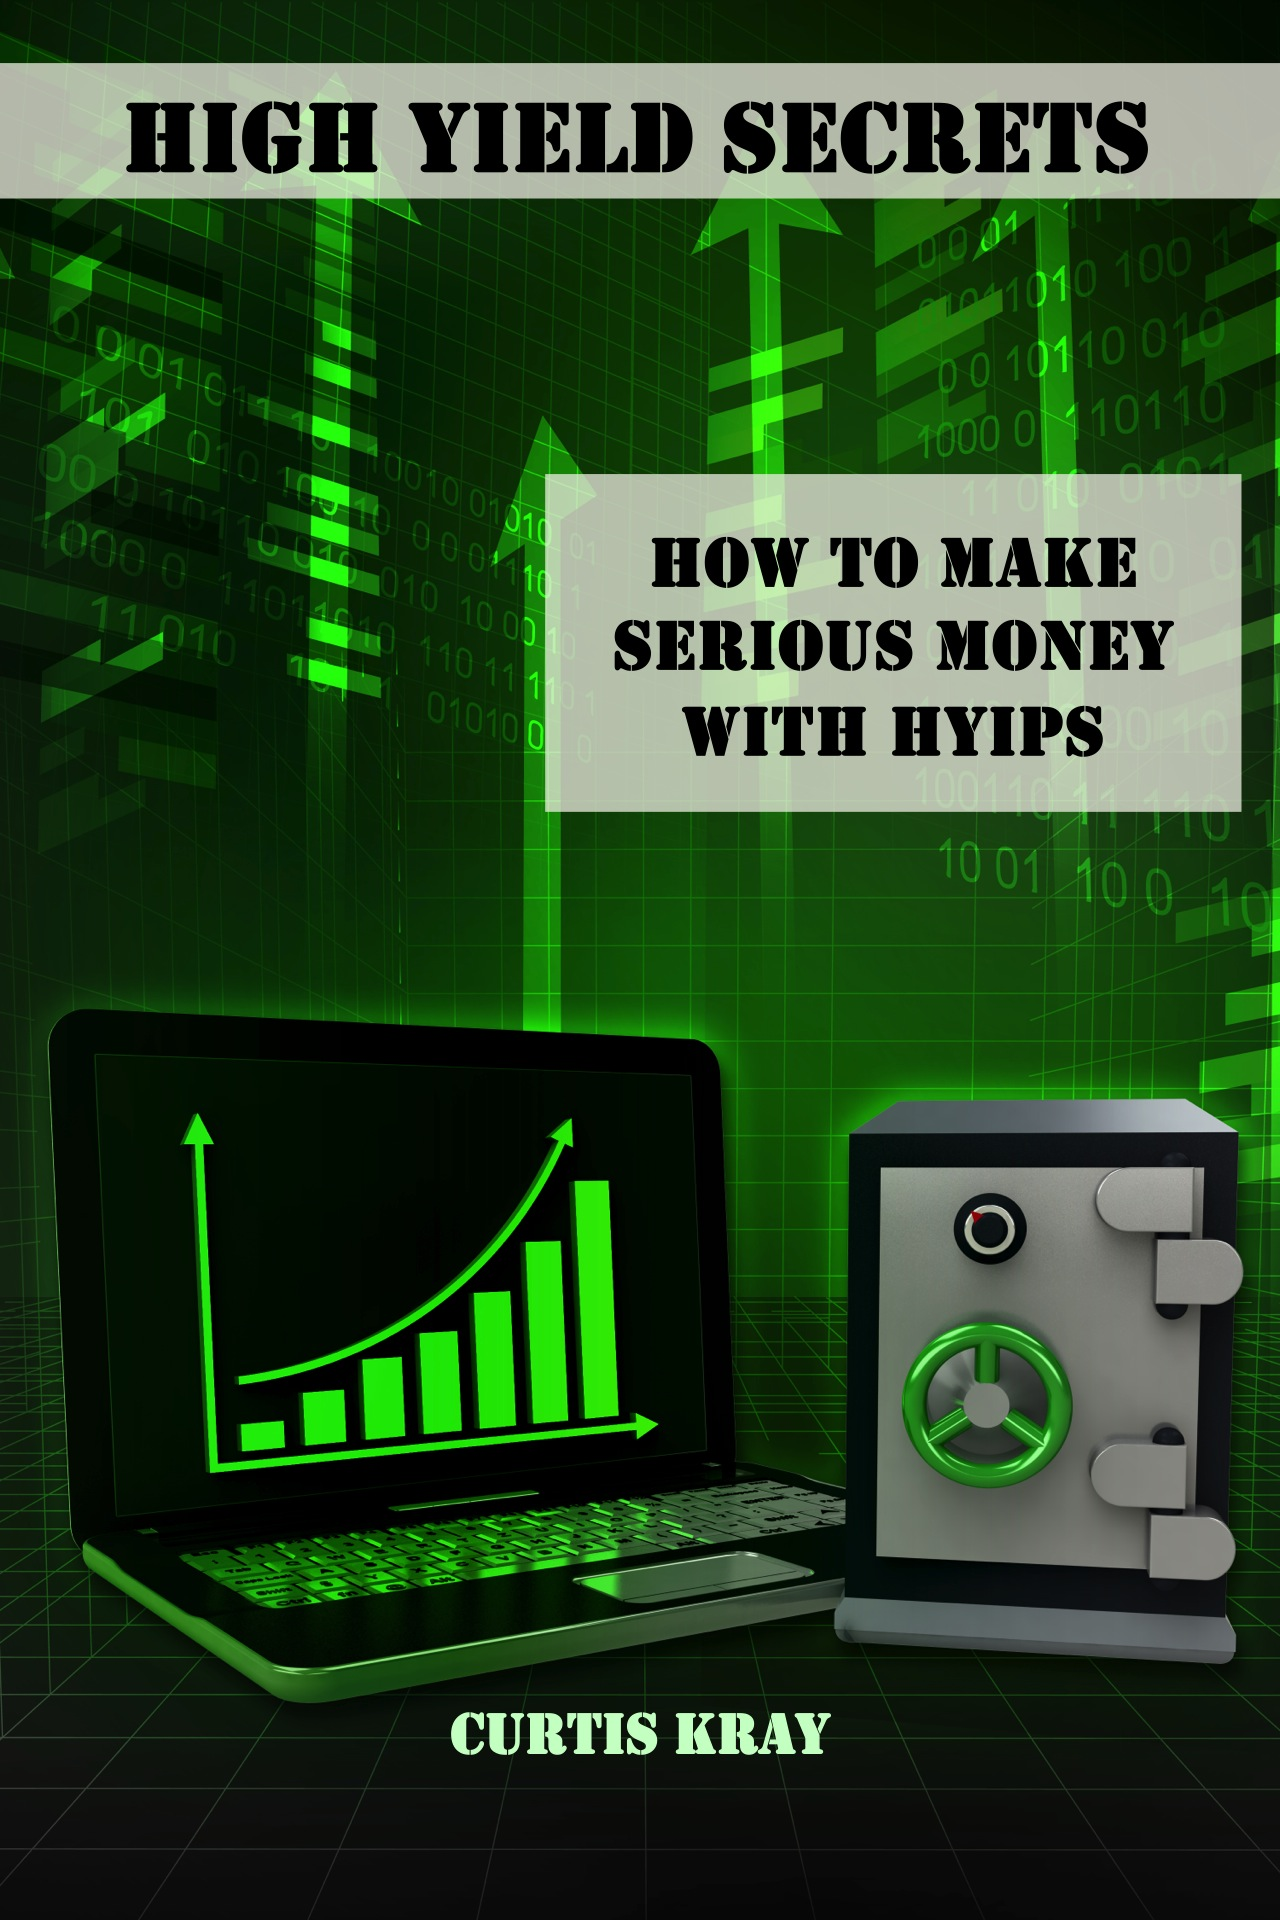 High yield secrets: how to make serious money with hyips